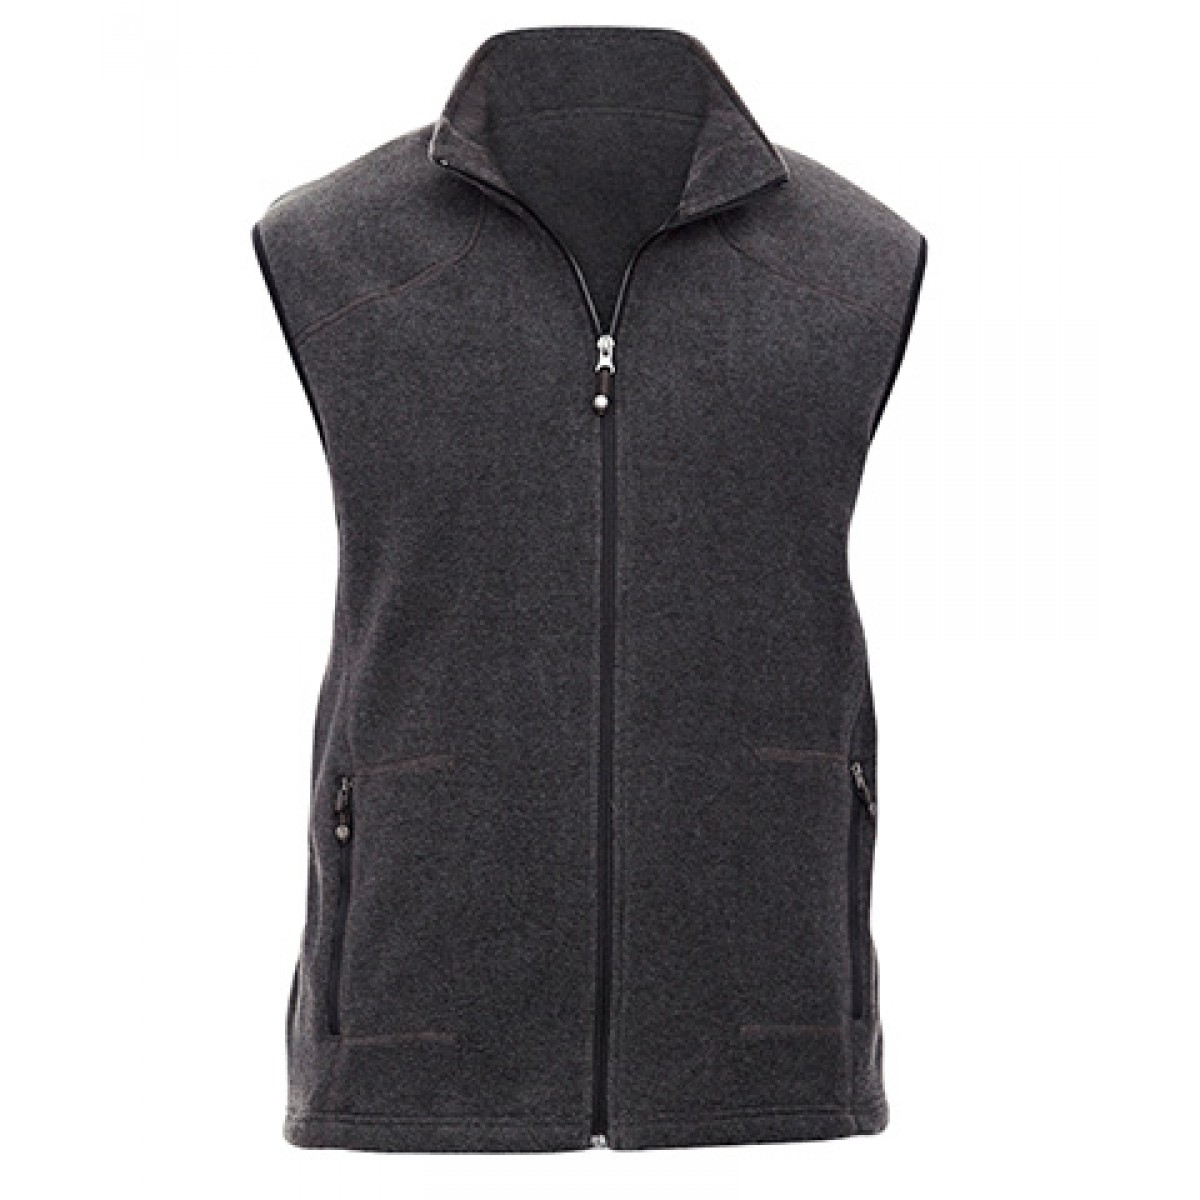 Men's Voyage Fleece Vest-Gray -XL